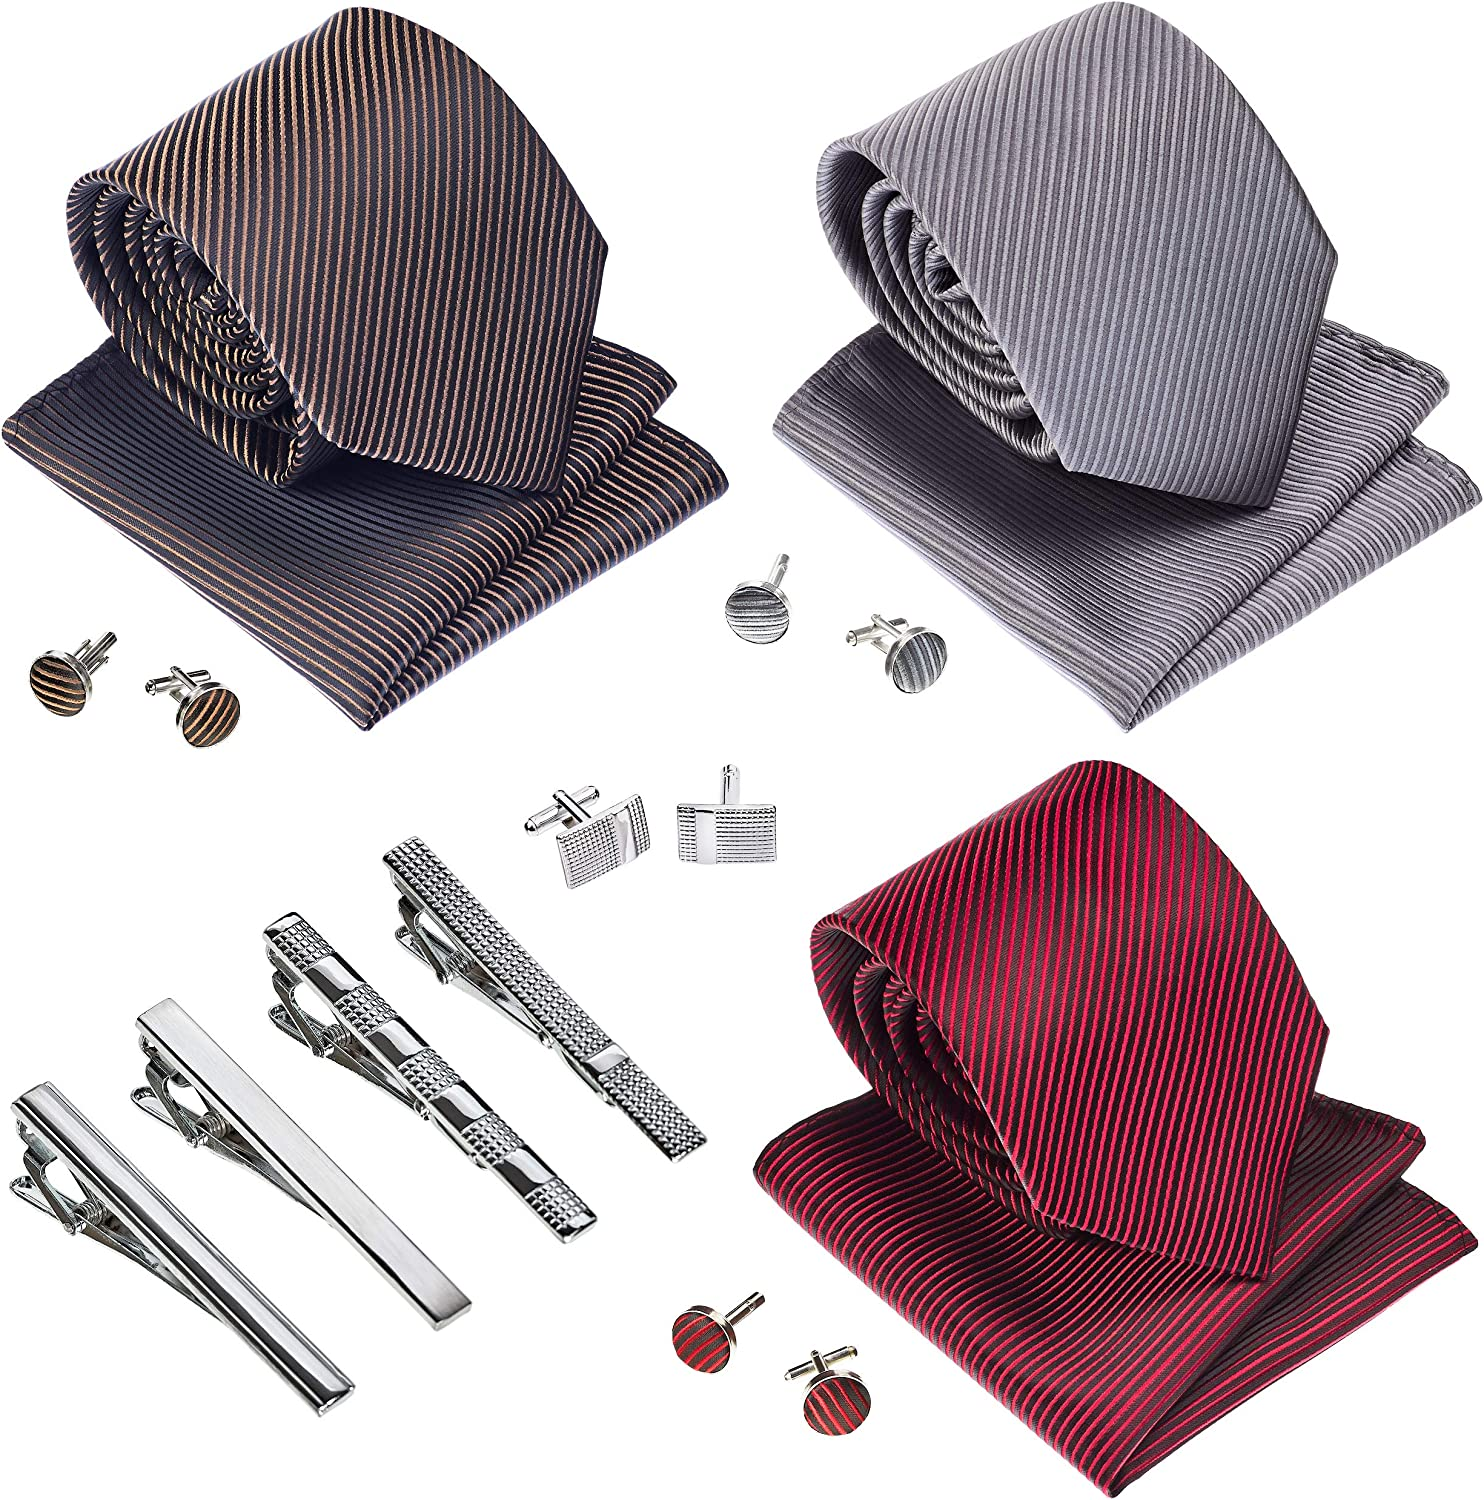 Premium Men/'s Gift Tie Set Silky Necktie Pocket Squares Tie Clips Cufflinks For Men